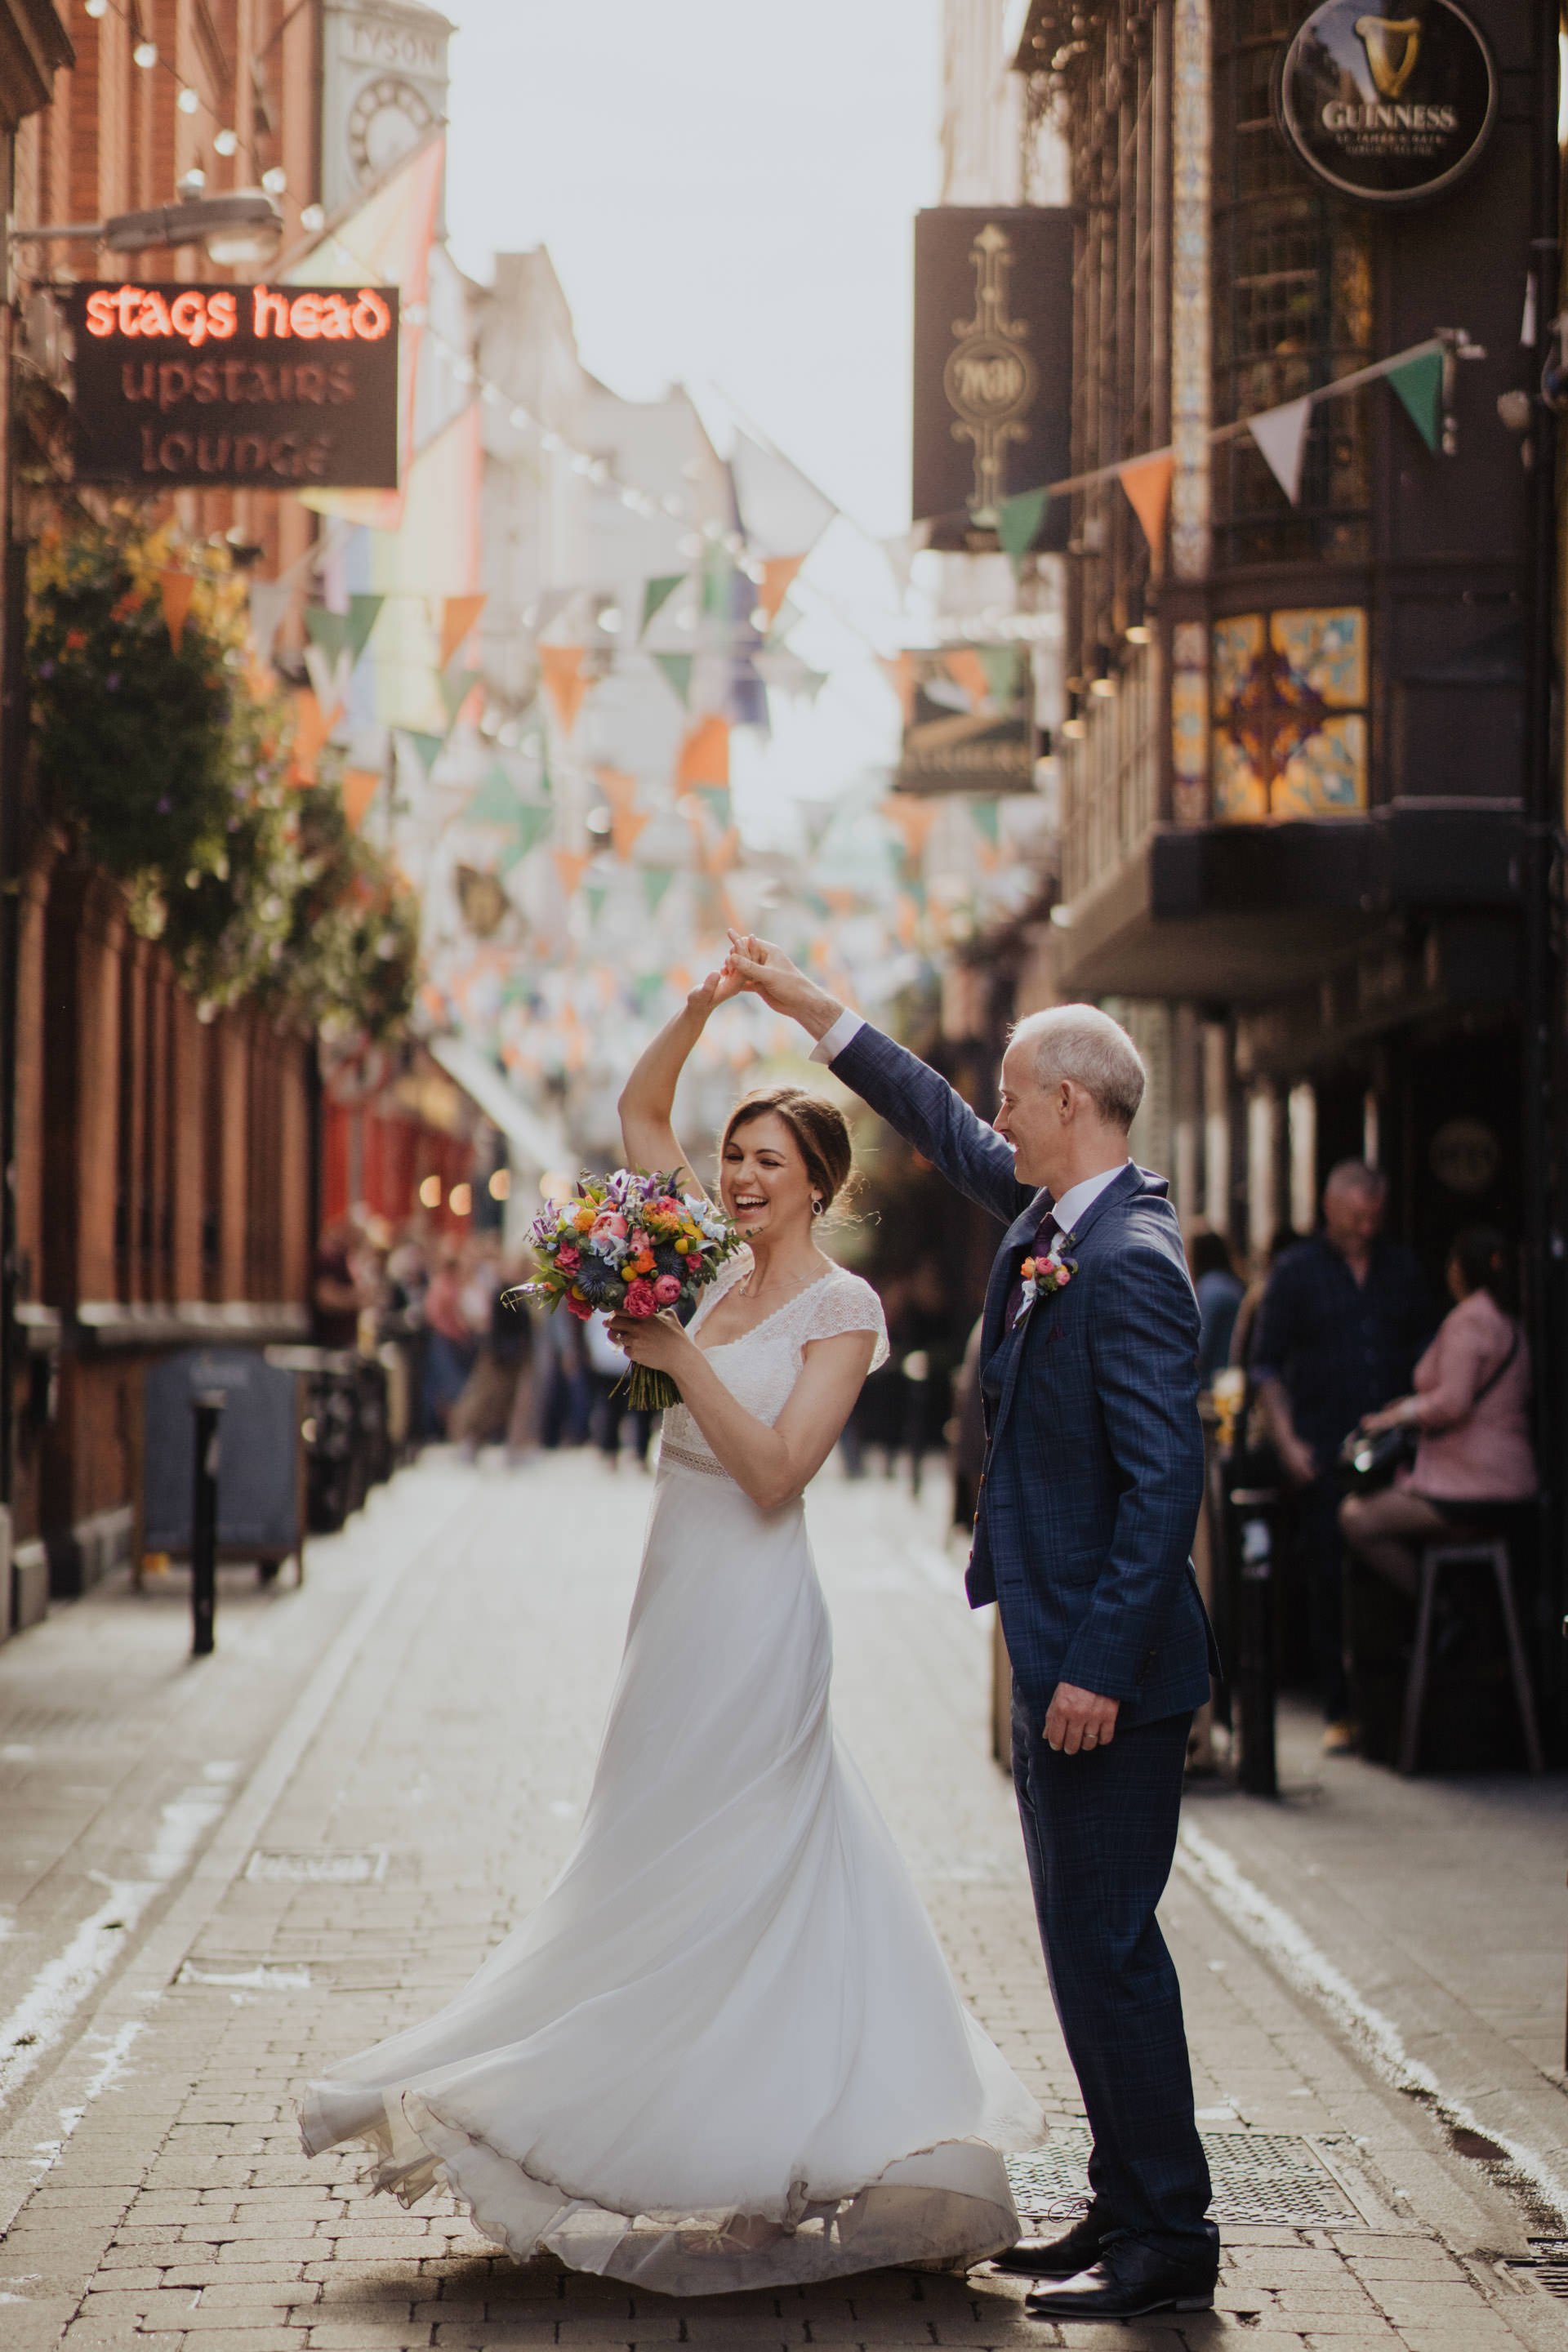 s&r_the_shelbourne_hotel_wedding_photographer_livia_figueiredo_22.jpg